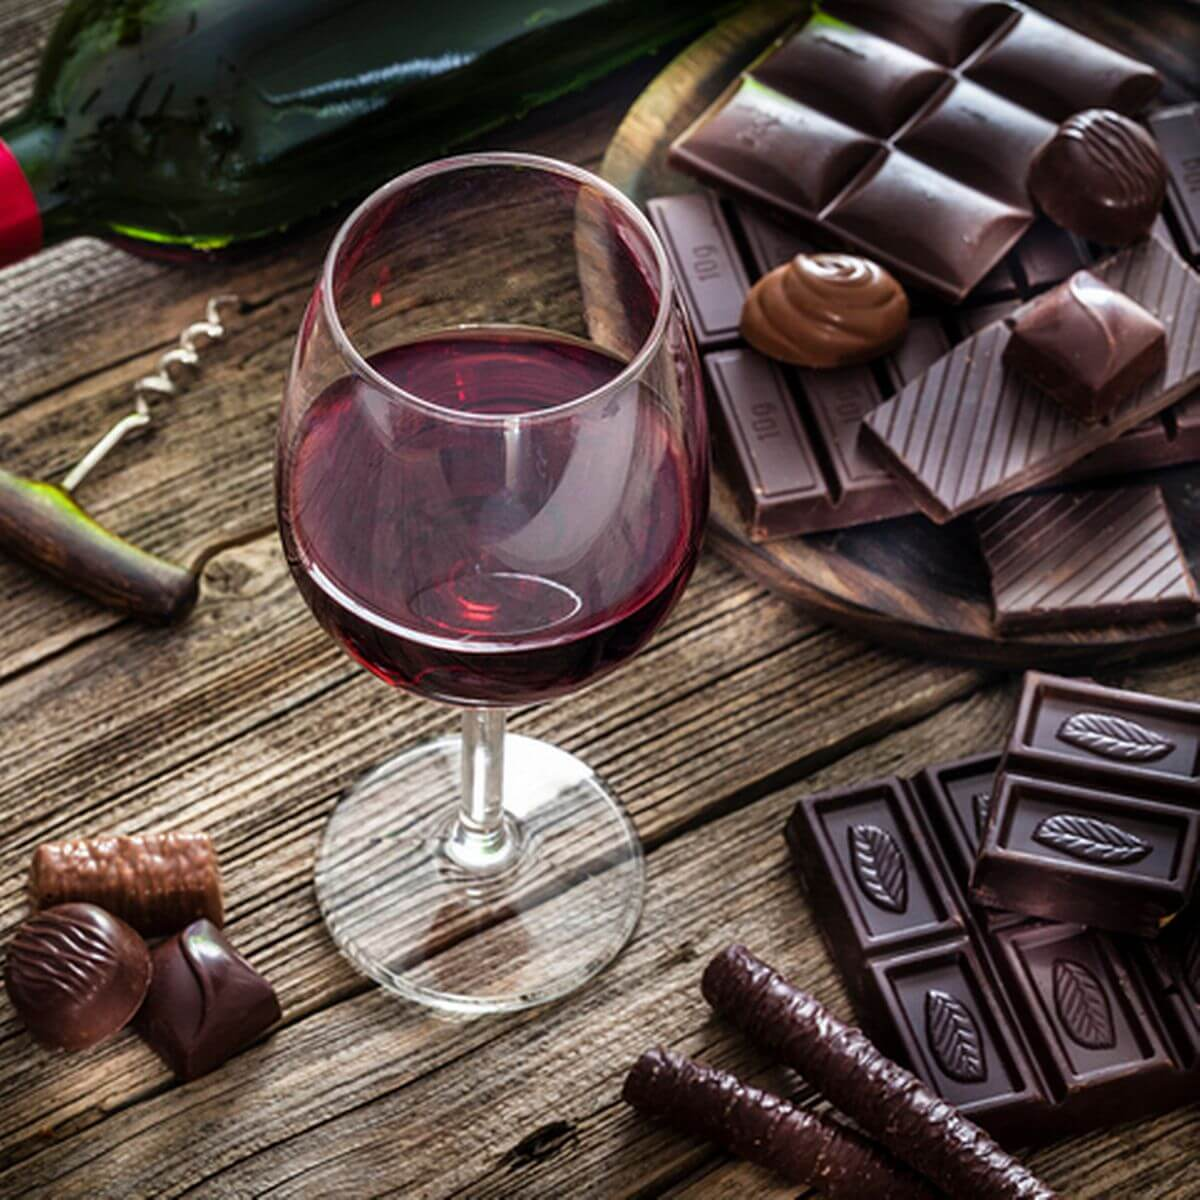 wine and chocolate parings for easter